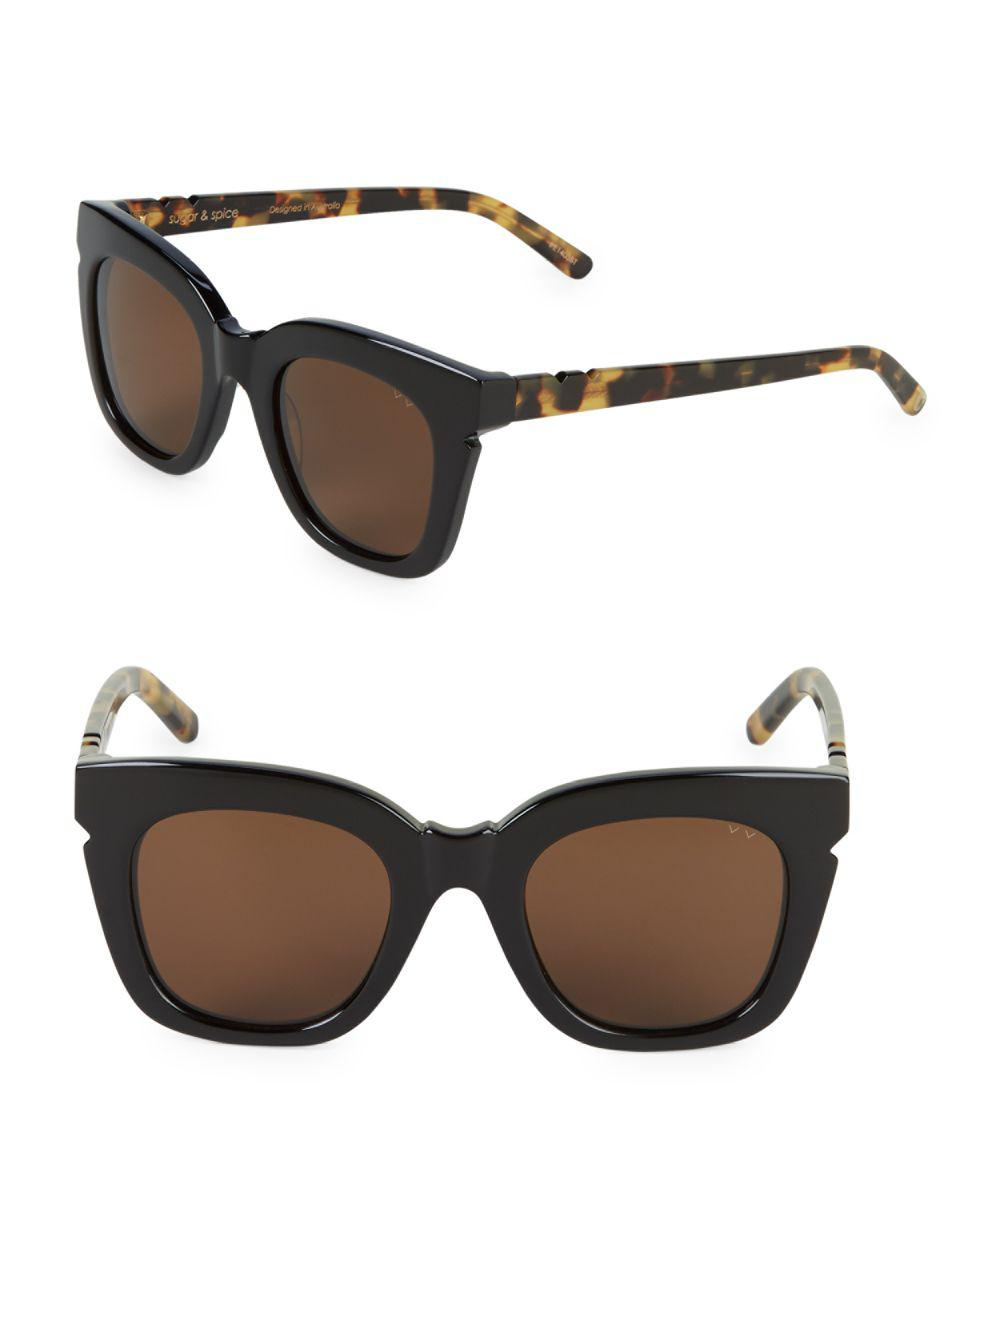 833fea7660 Pared Eyewear Classic 44mm Butterfly Sunglasses in Black - Lyst